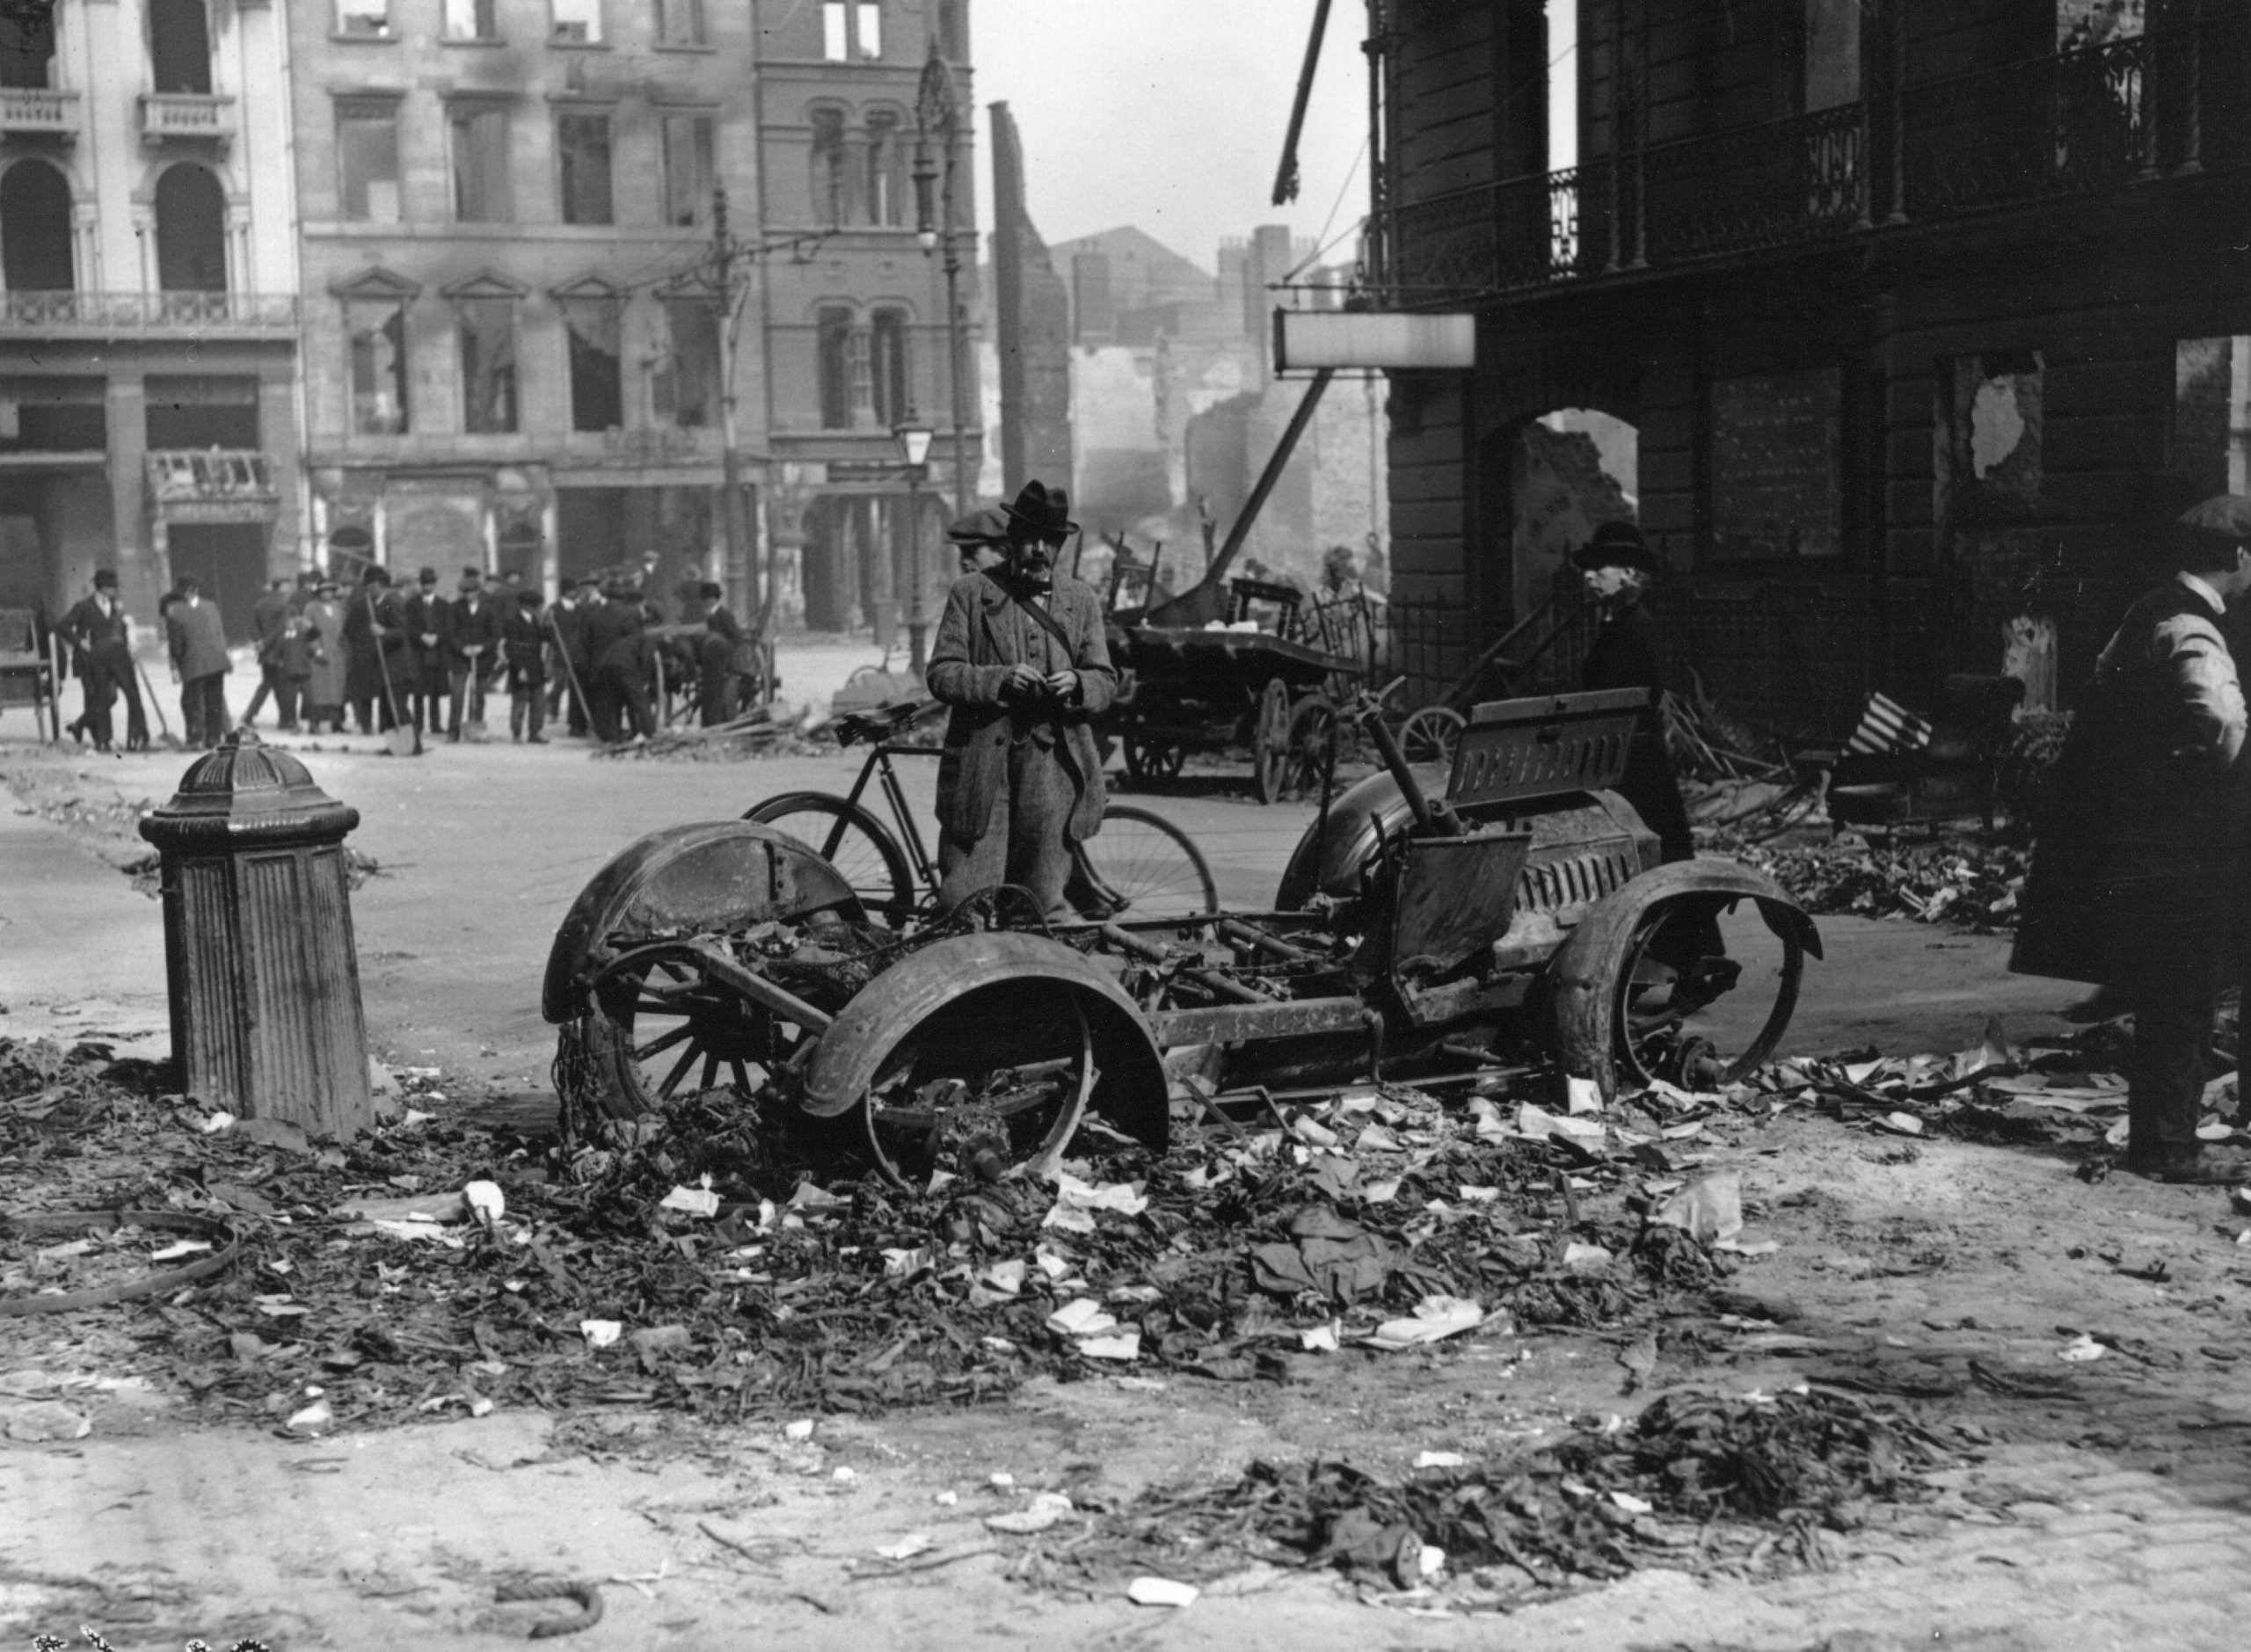 A century after the Easter Rising, we Brits should be less nervous about celebrating Irish history